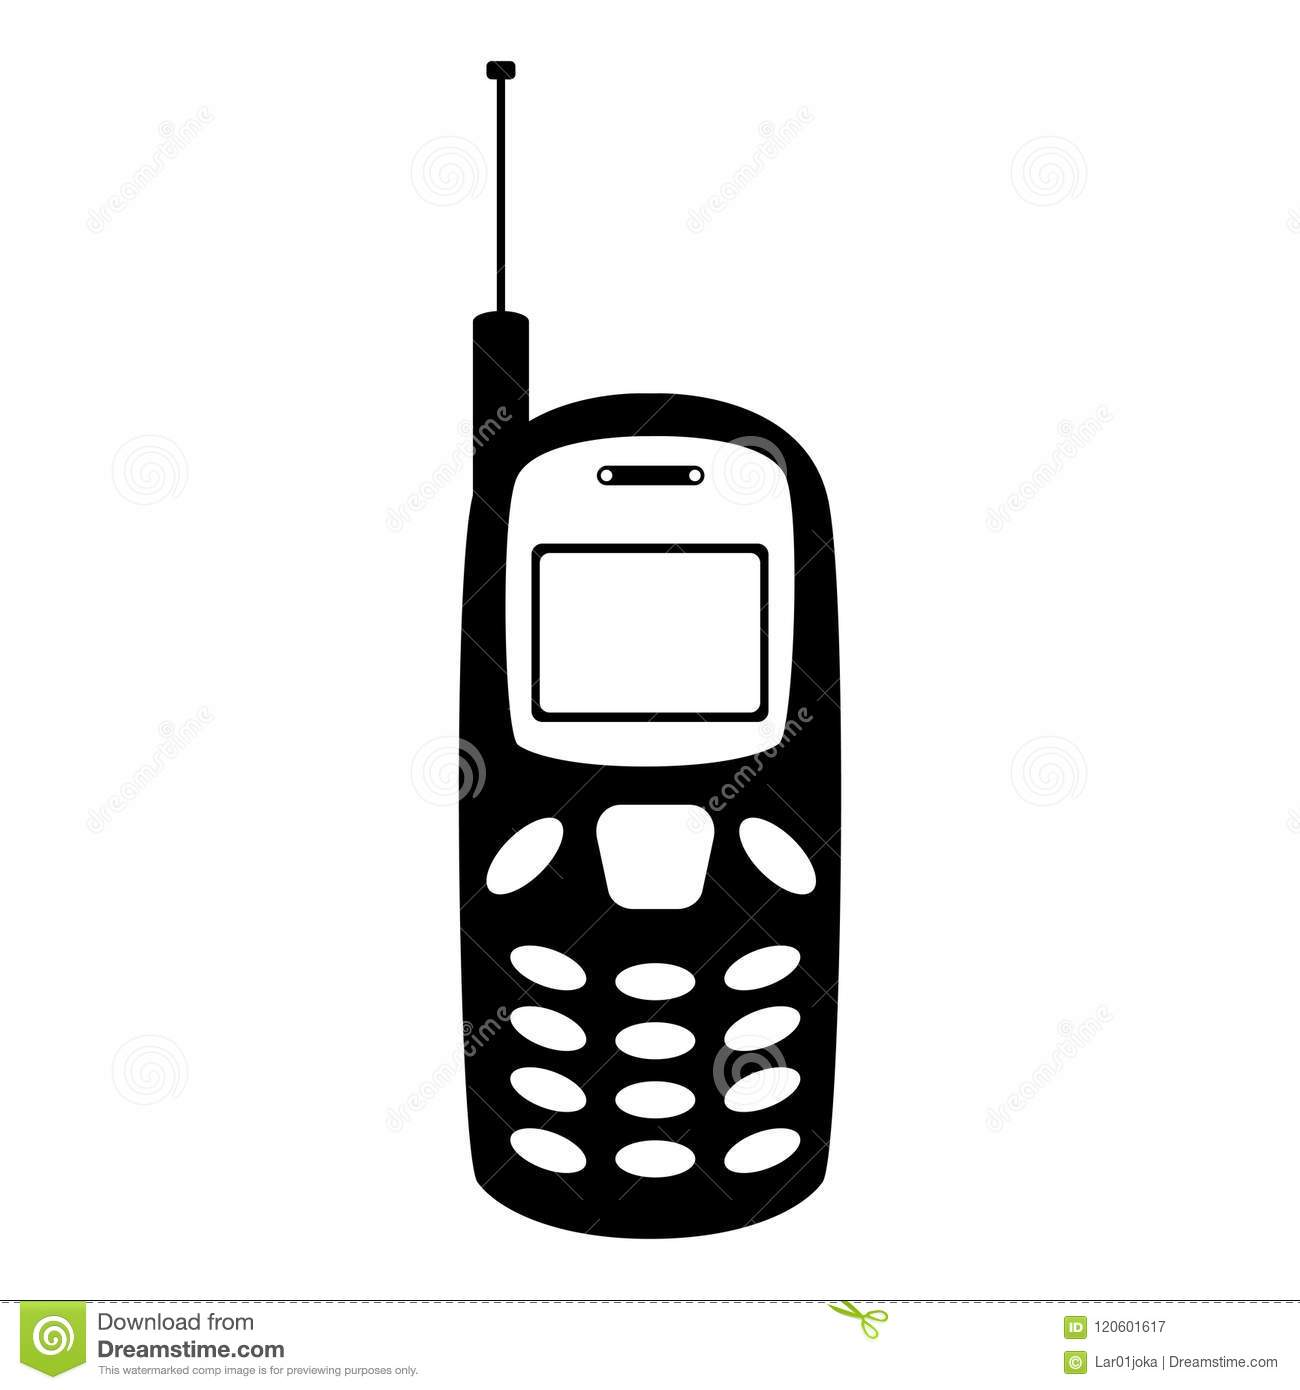 Isolated Old Cellphone Icon Stock Vector Illustration Of Keypad Electronically Designed Design